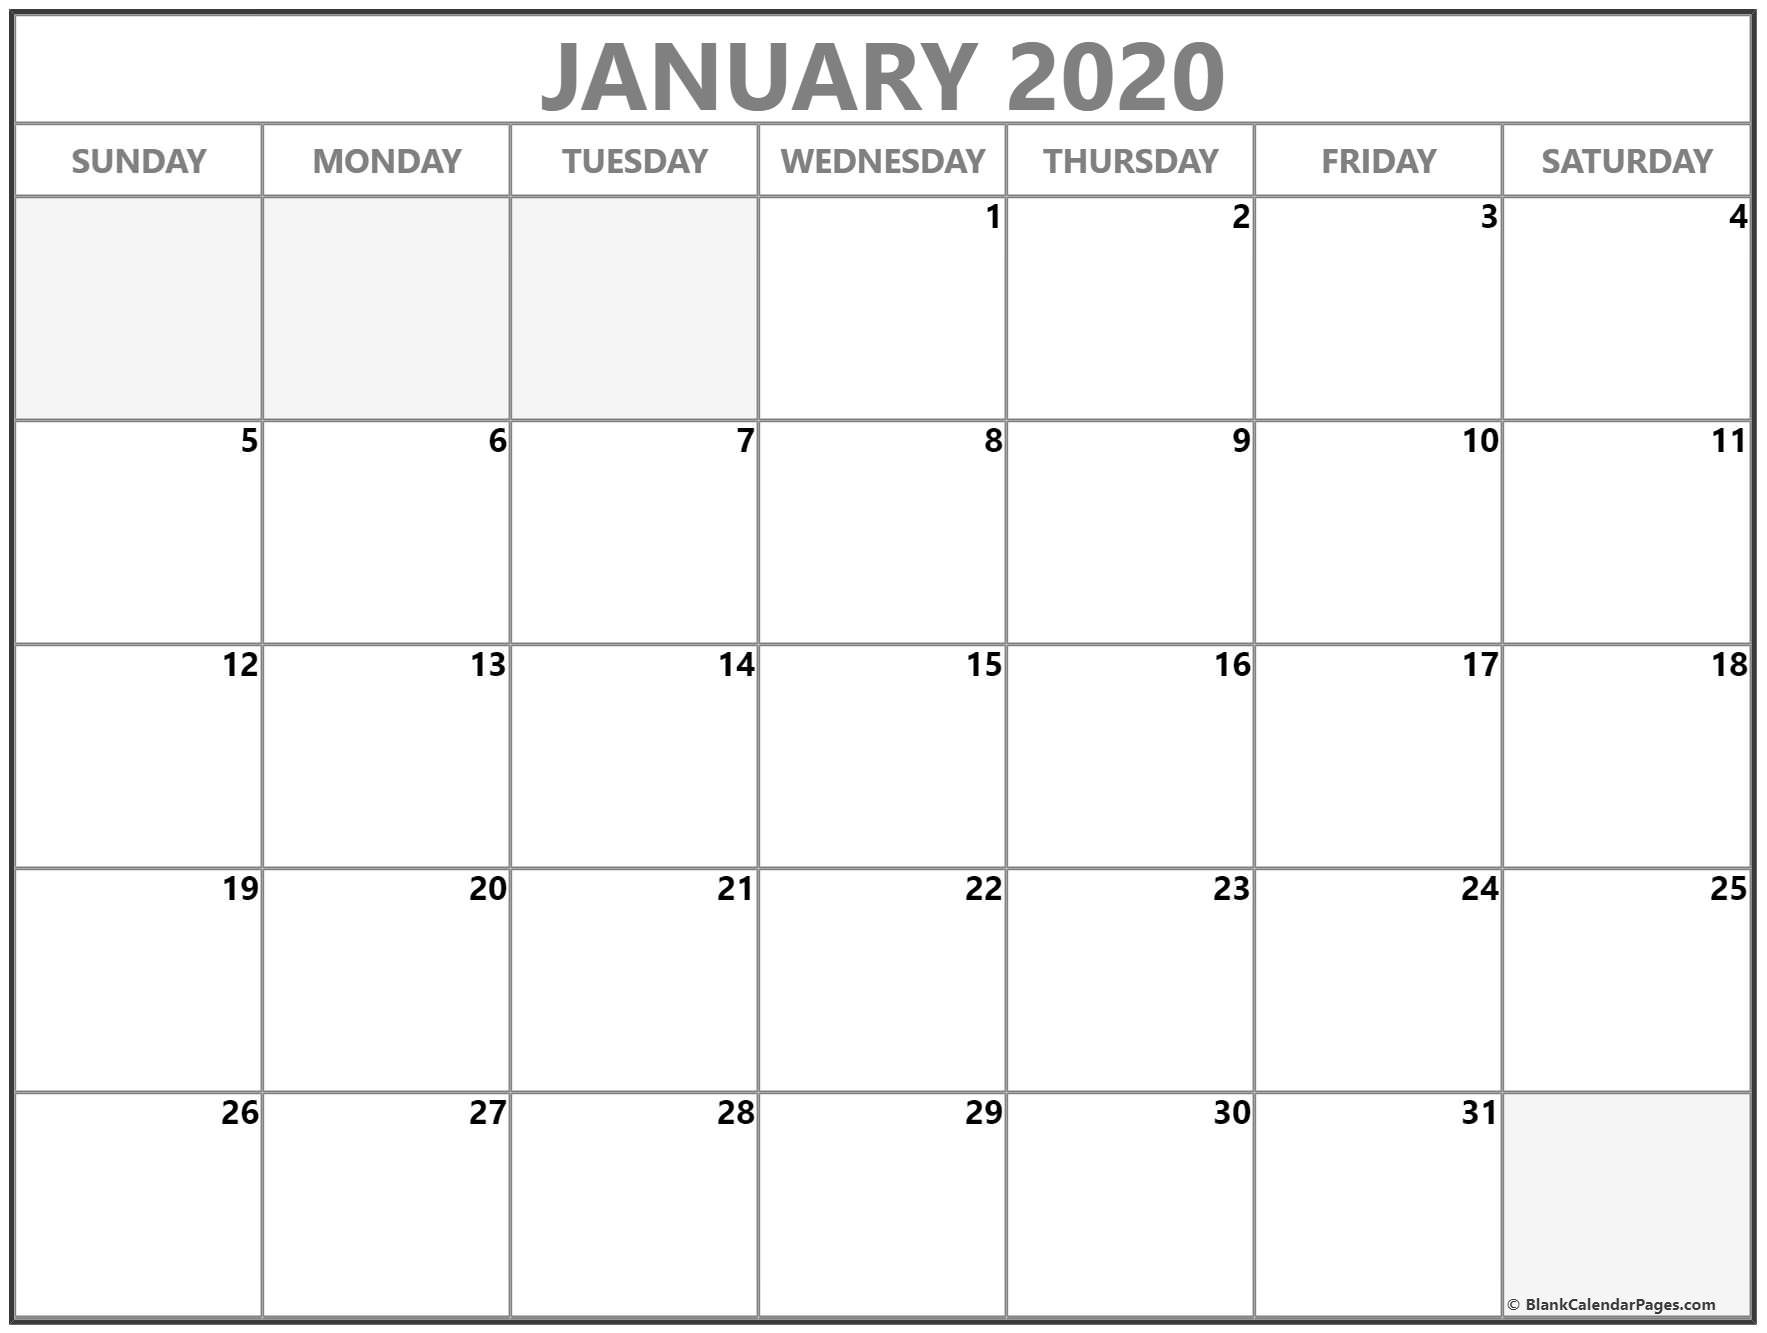 January 2020 Calendar | Free Printable Monthly Calendars-January Thru December 2020 Printable Monthly Calendar